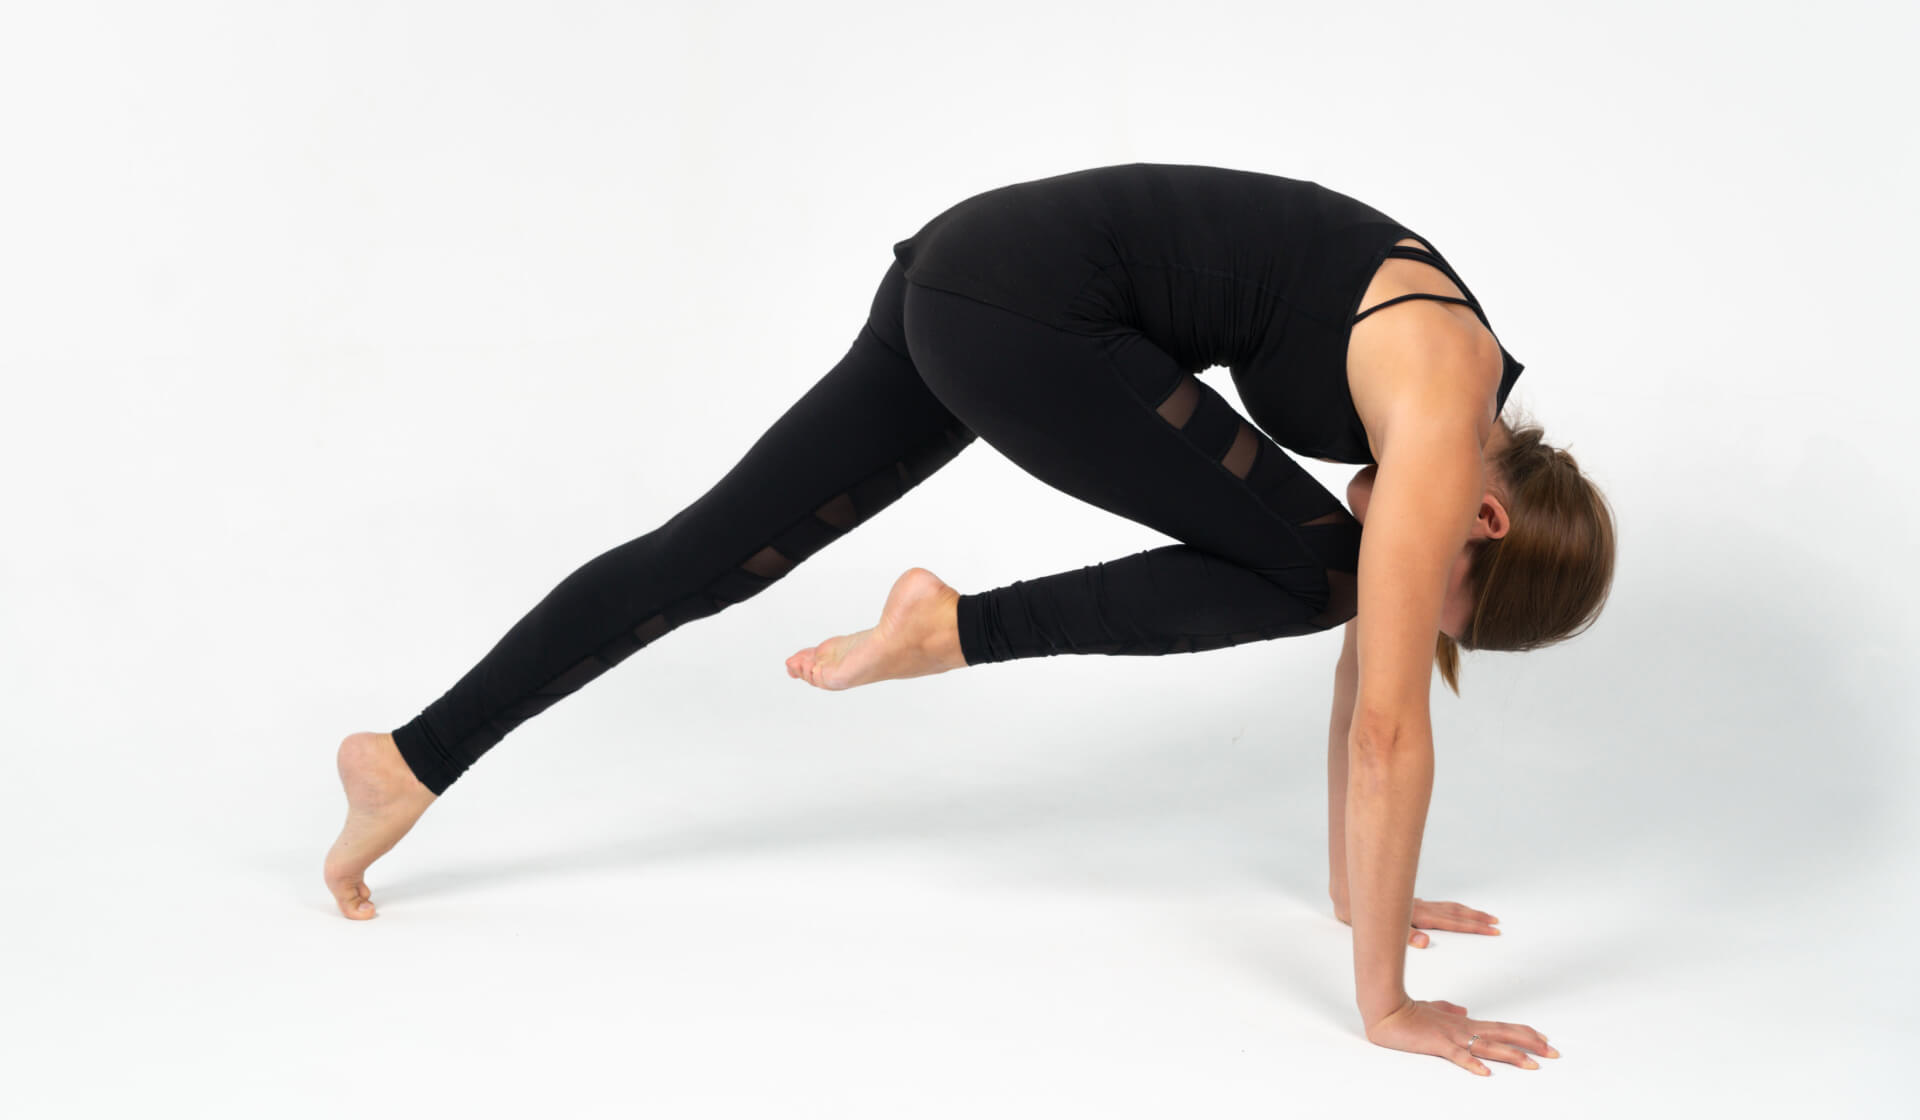 Woman yoga teacher dressed in all black practicing a yoga pose (core plank pose) against a white backdrop